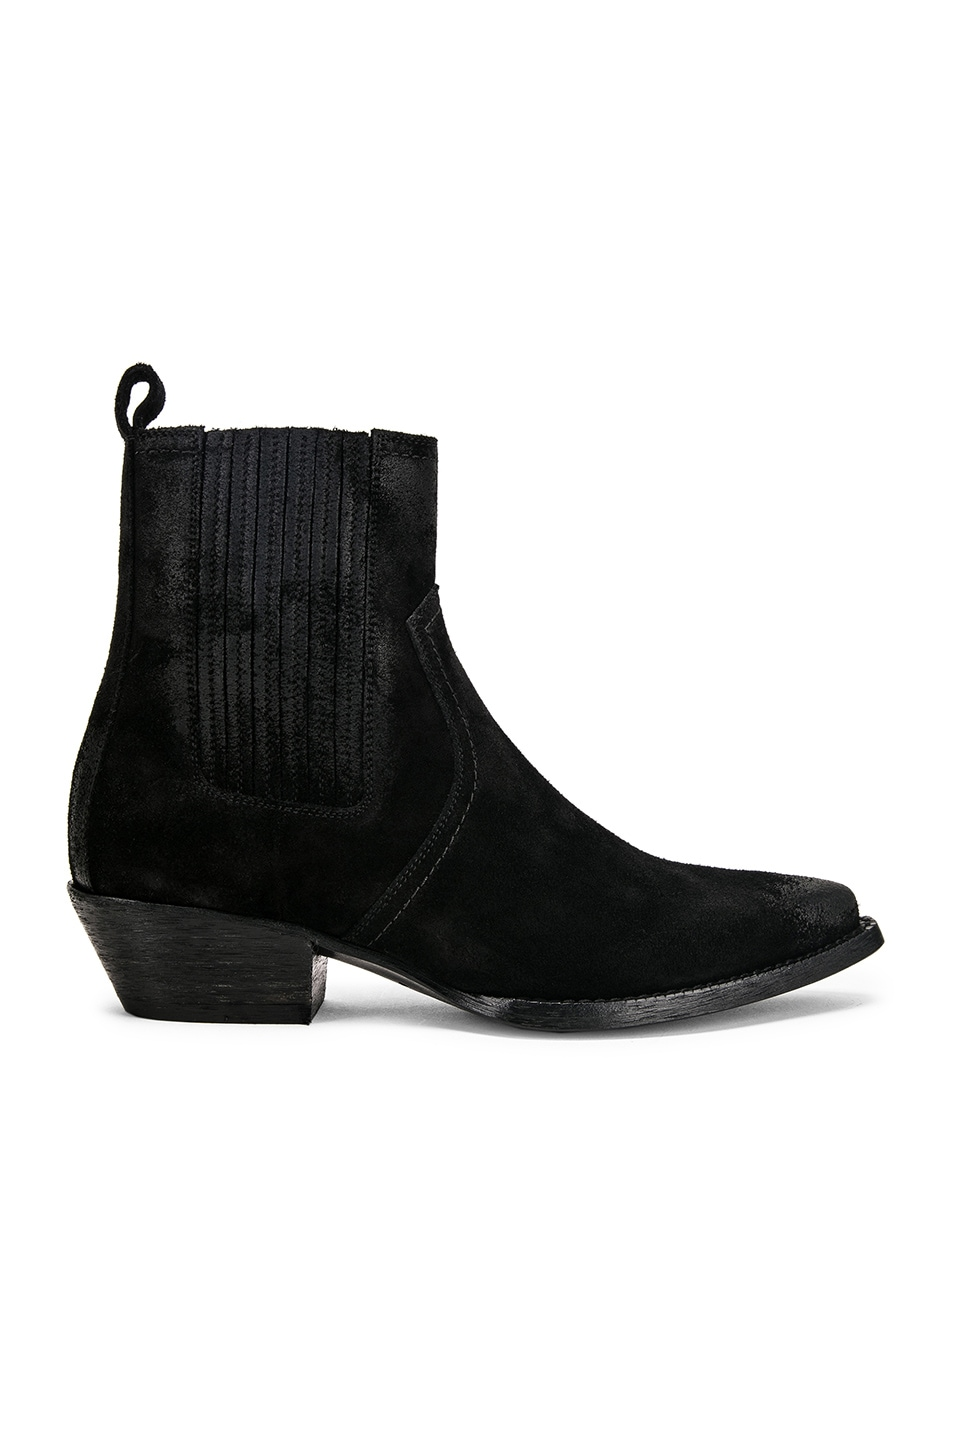 Image 1 of Saint Laurent Western Ankle Bootie in Black